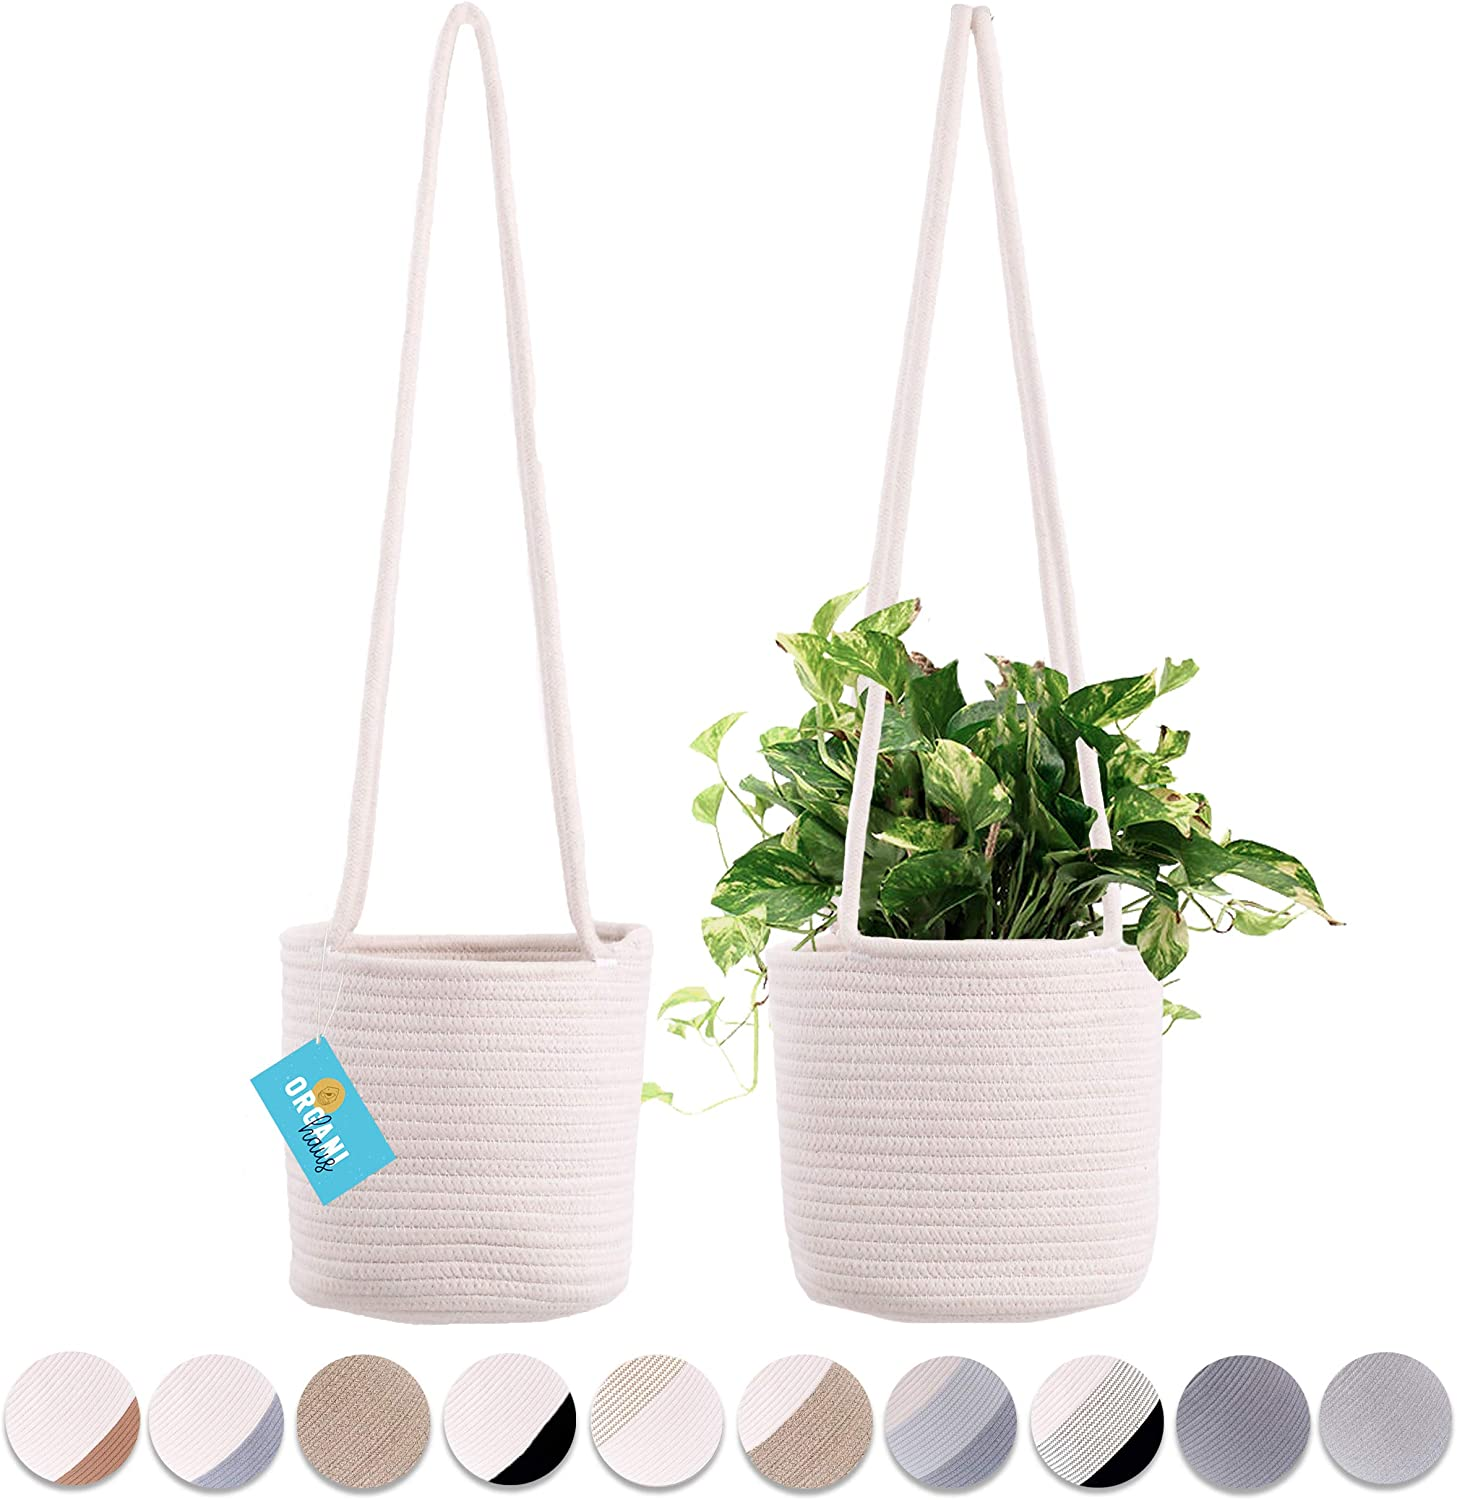 """Shop Set of 2 Hanging Rope Planter Baskets 8""""x8"""" with Long Hanging Rope from Amazon on Openhaus"""